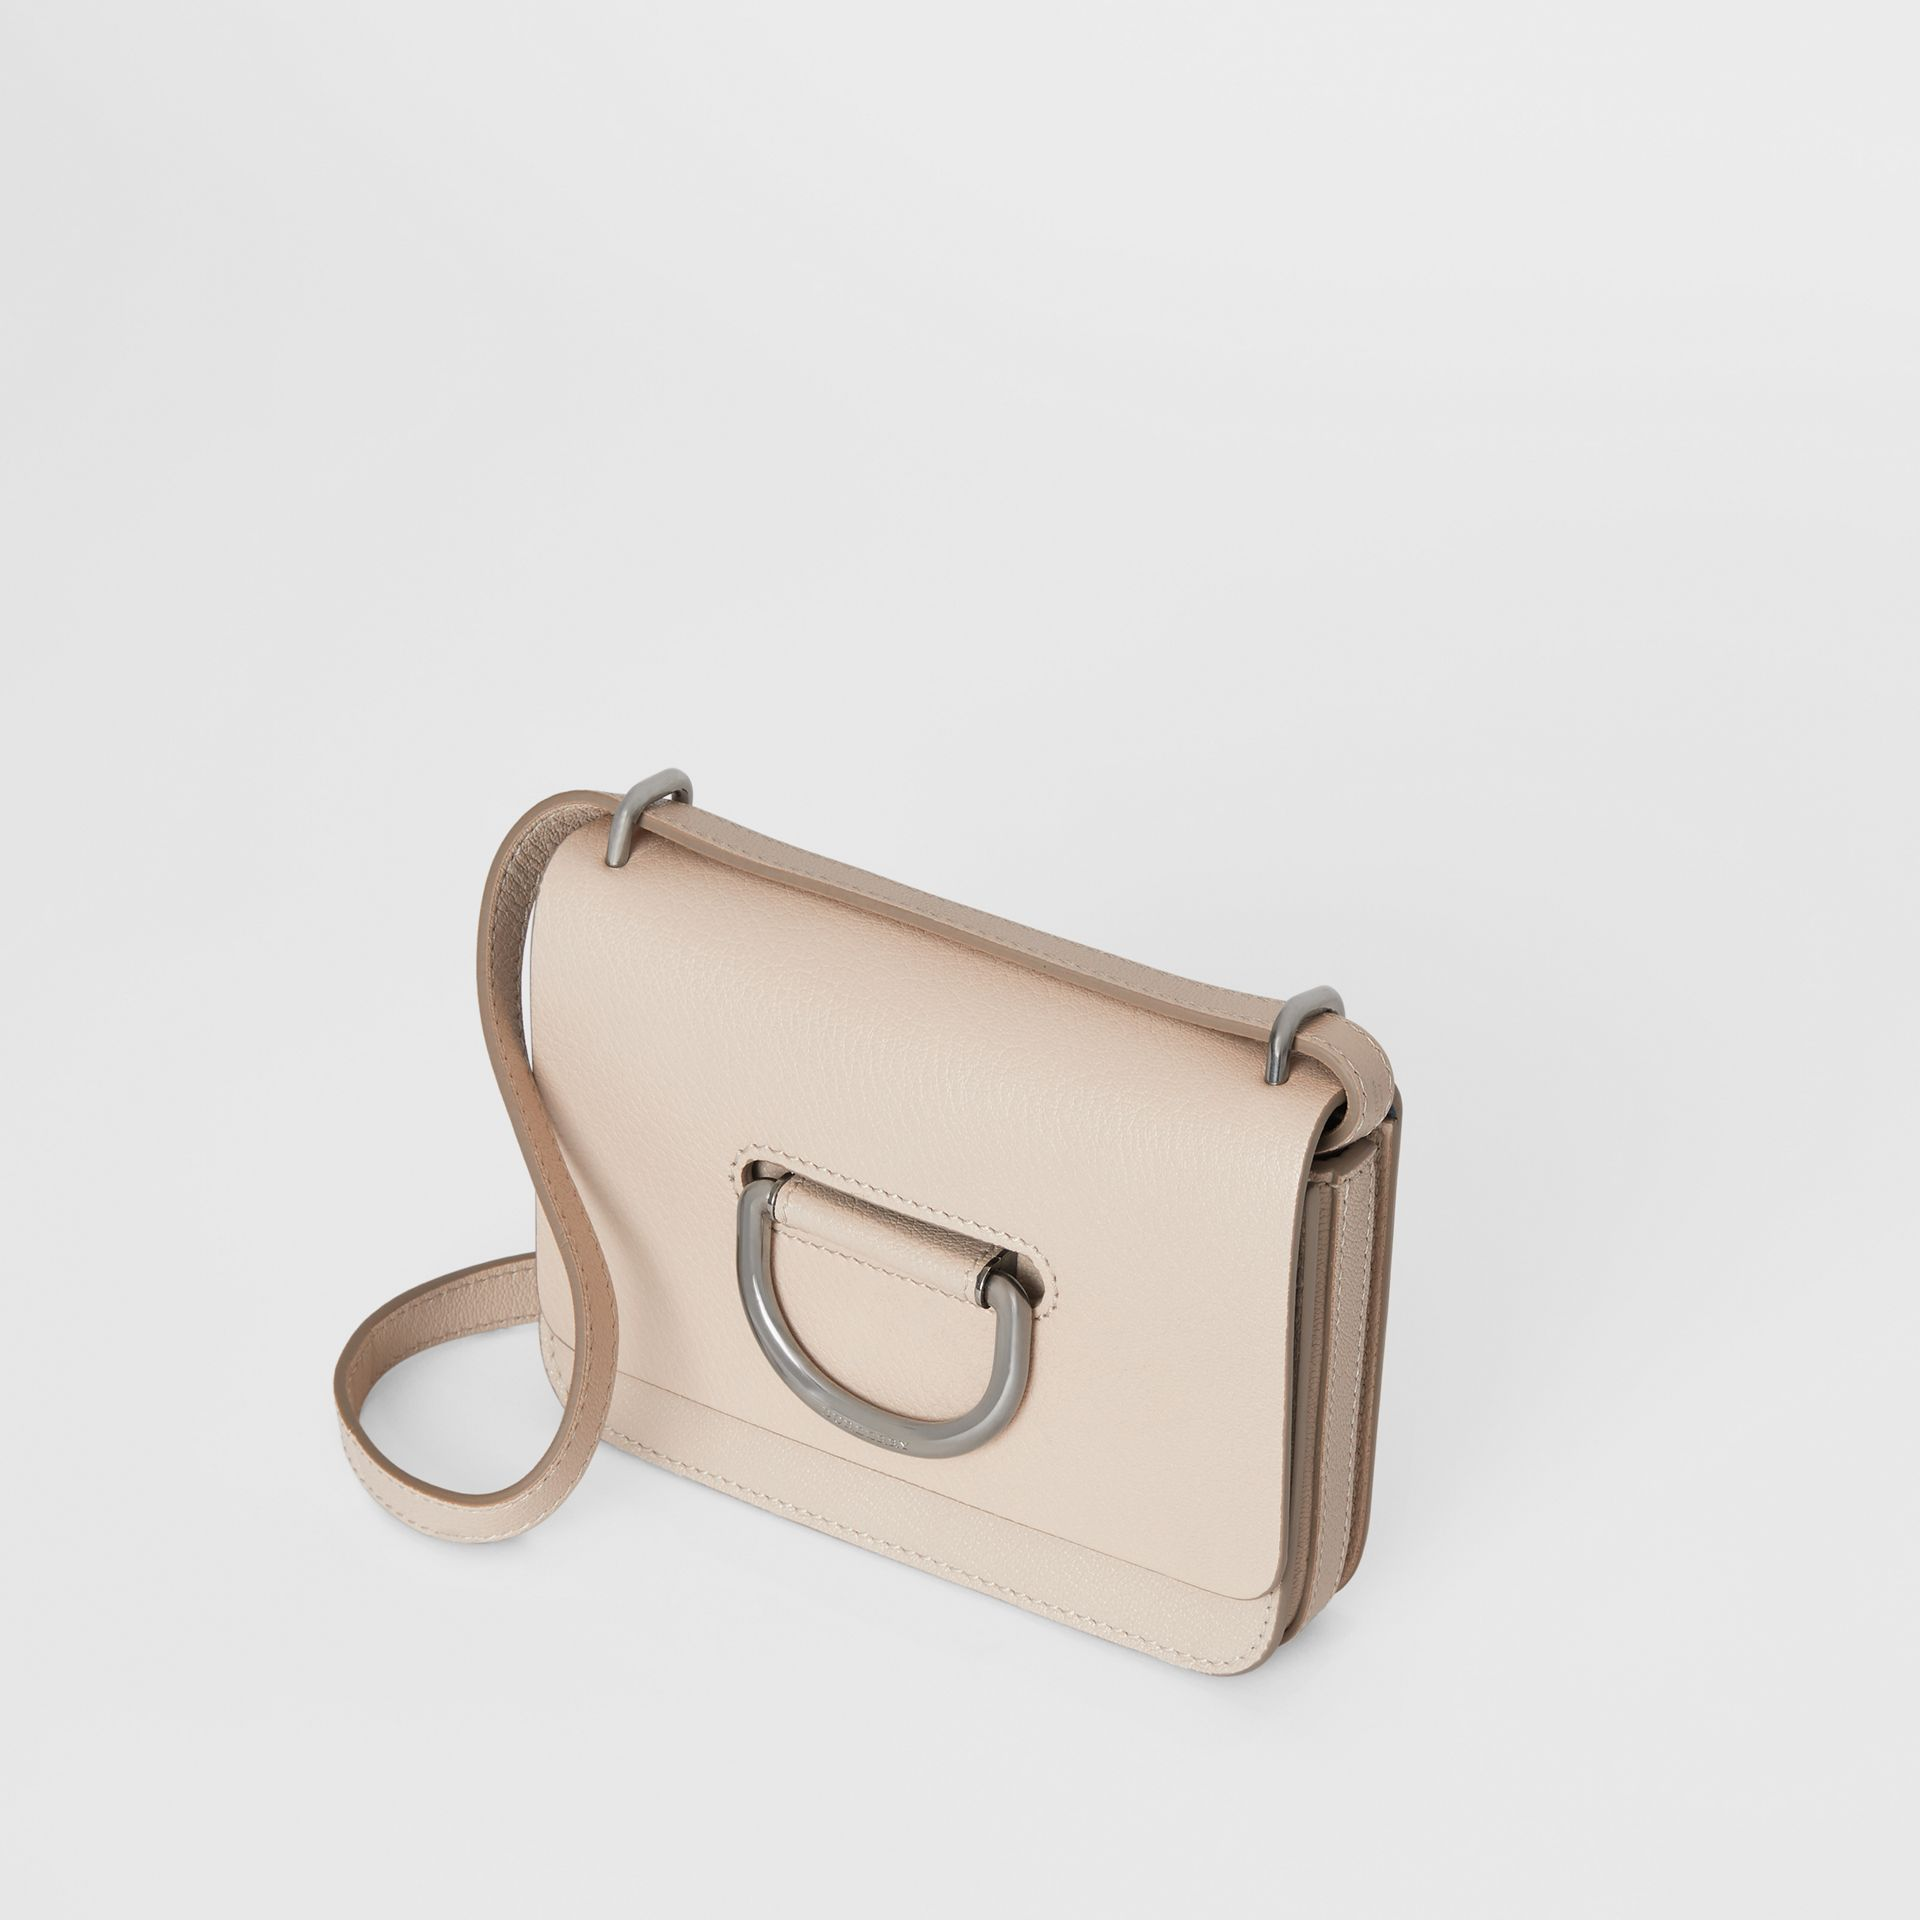 Mini sac The D-ring en cuir (Stone) - Femme | Burberry - photo de la galerie 4